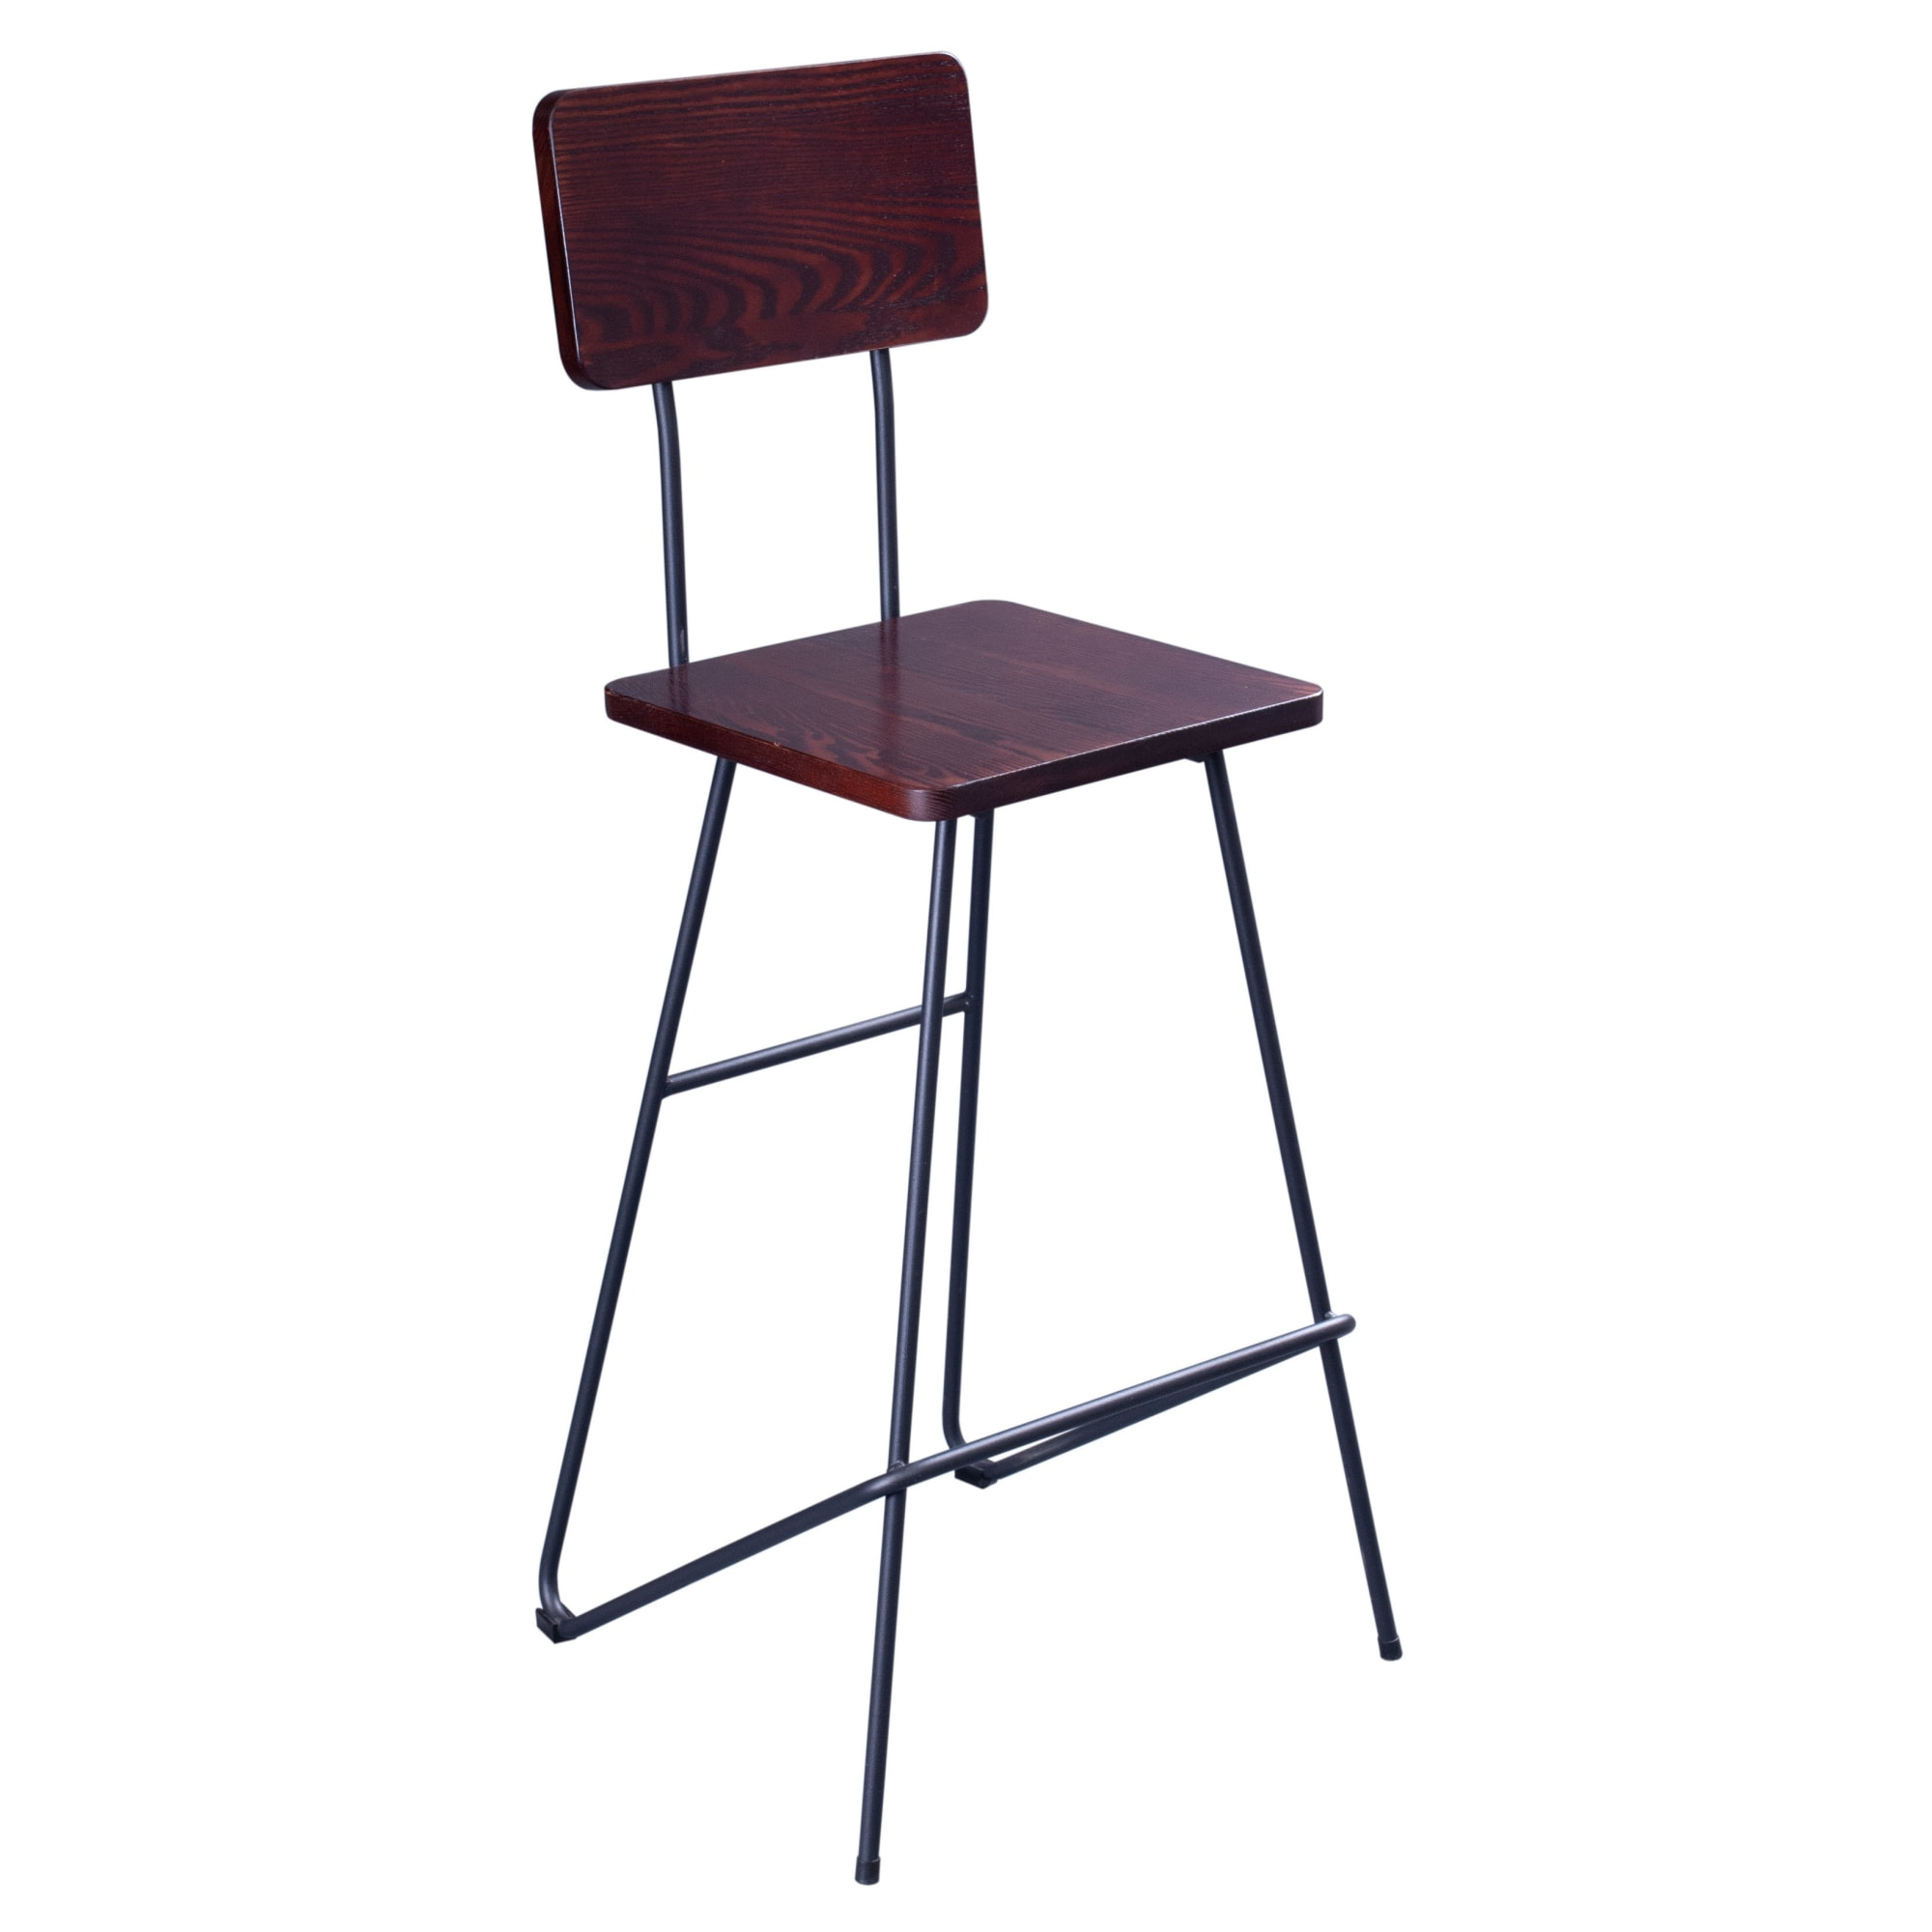 Mantis Industrial Style Metal Bar Stool with Mantis Industrial Style Metal Bar Stool